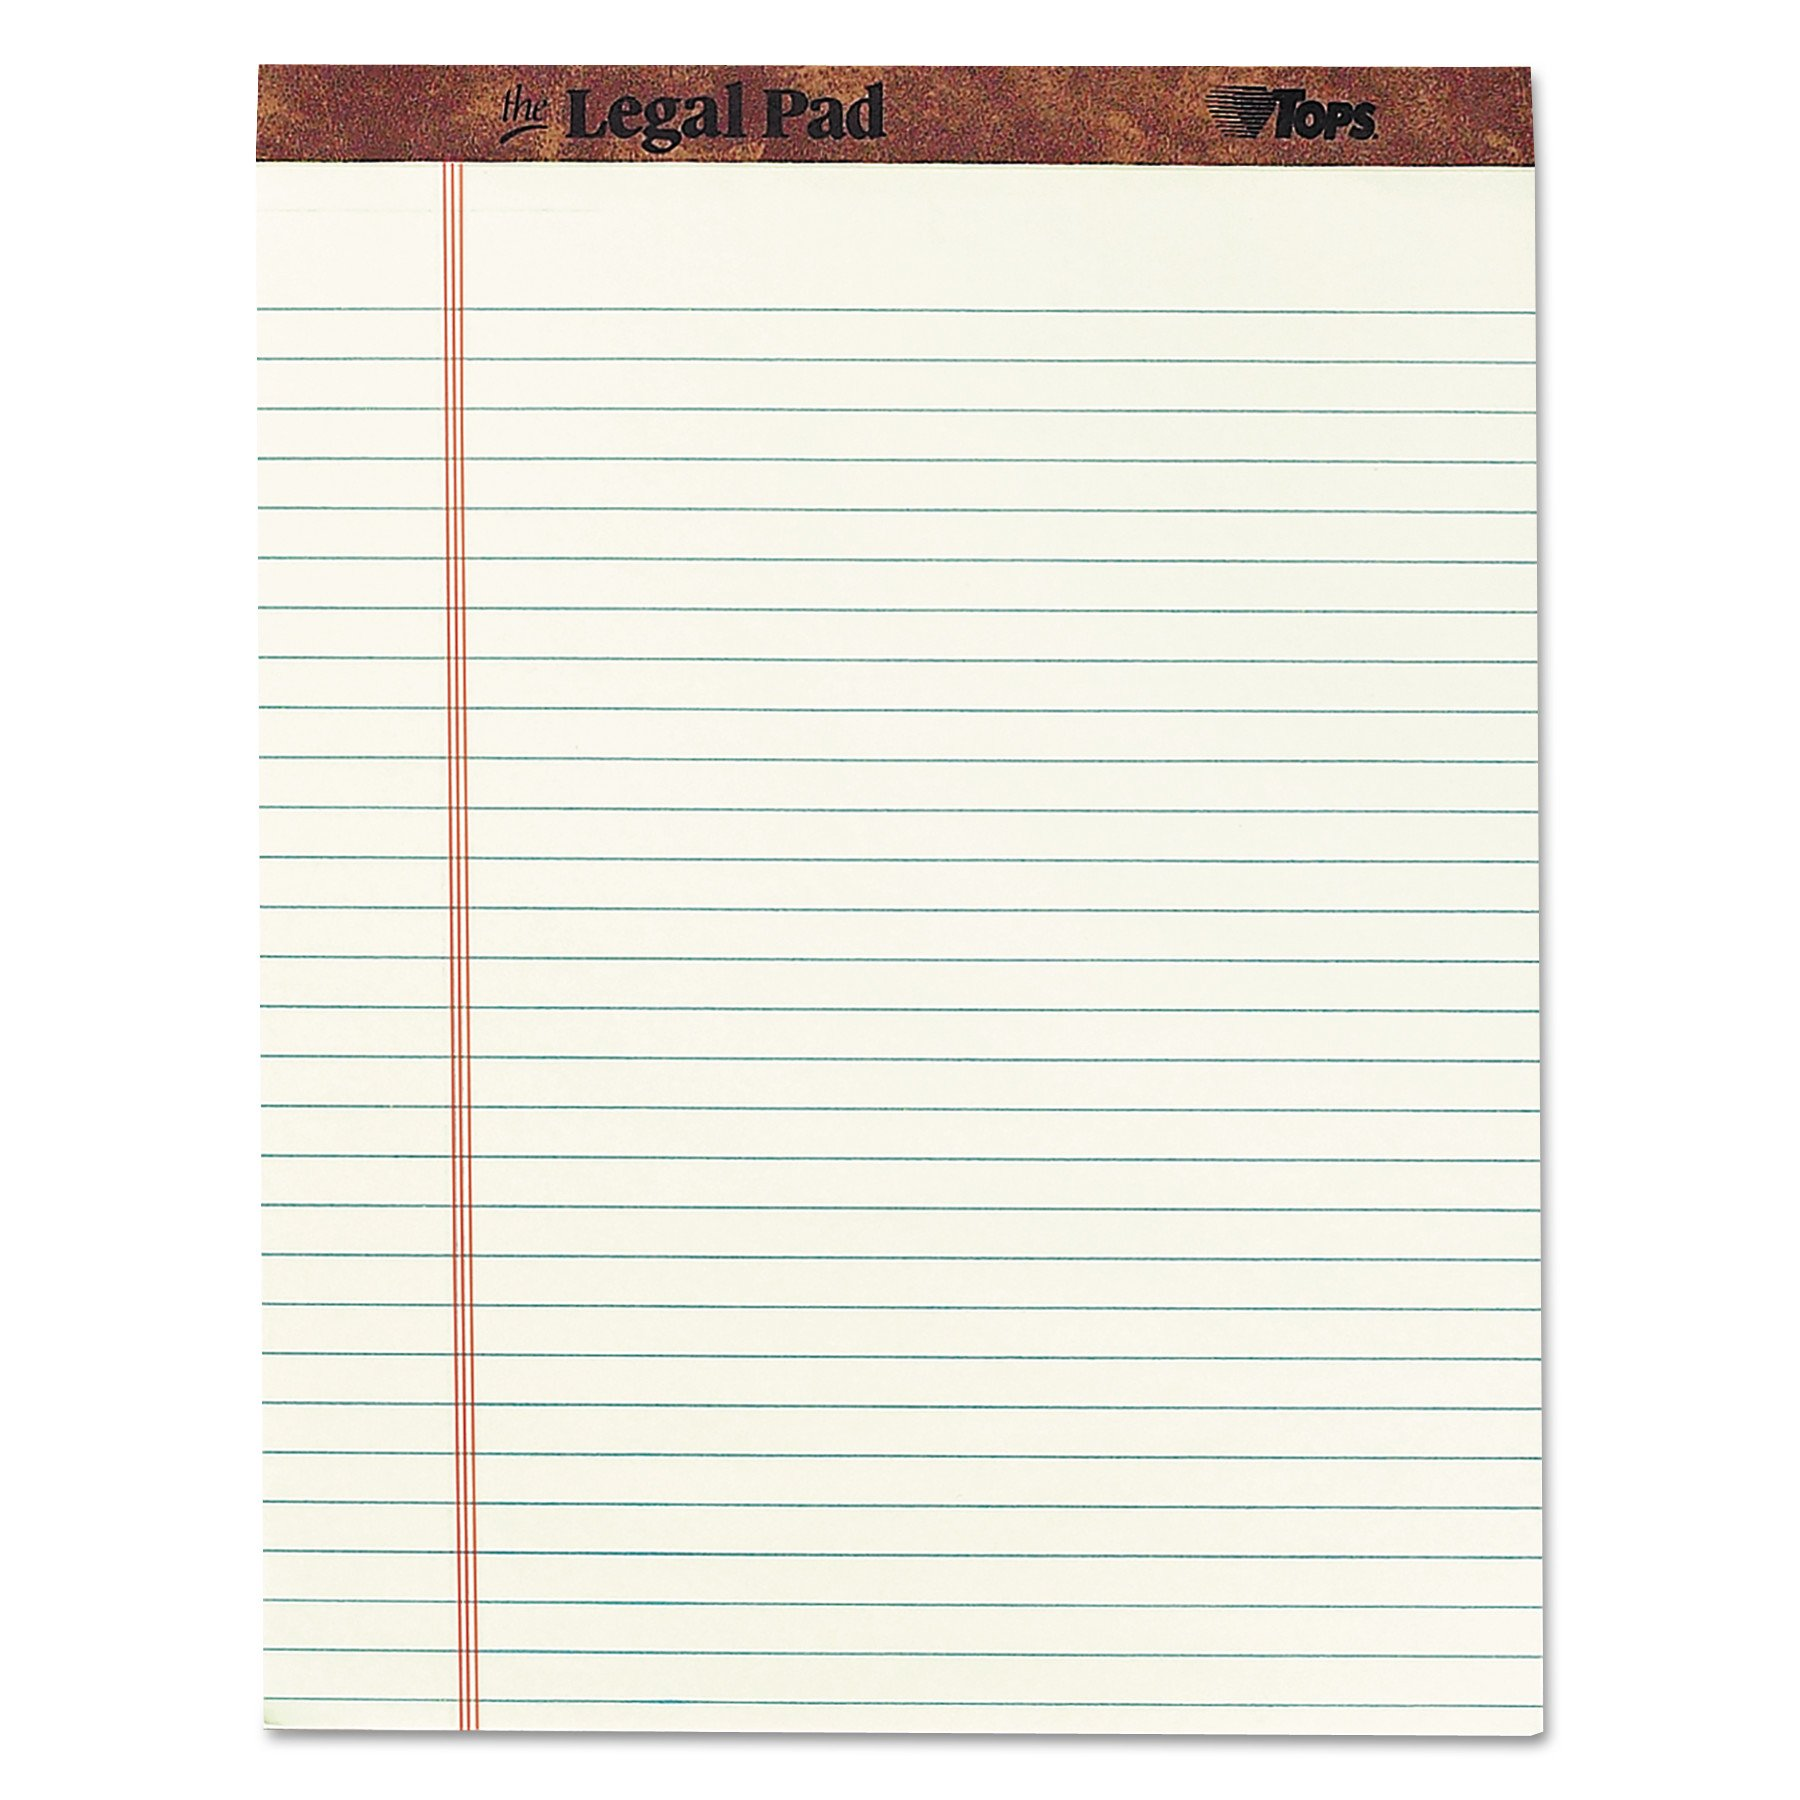 TOPS 7534 ''The Legal Pad'' Ruled Perforated Pads, 8 1/2 x 11 3/4, Green Tint, 50 Sheets (Case of 12 Pads)